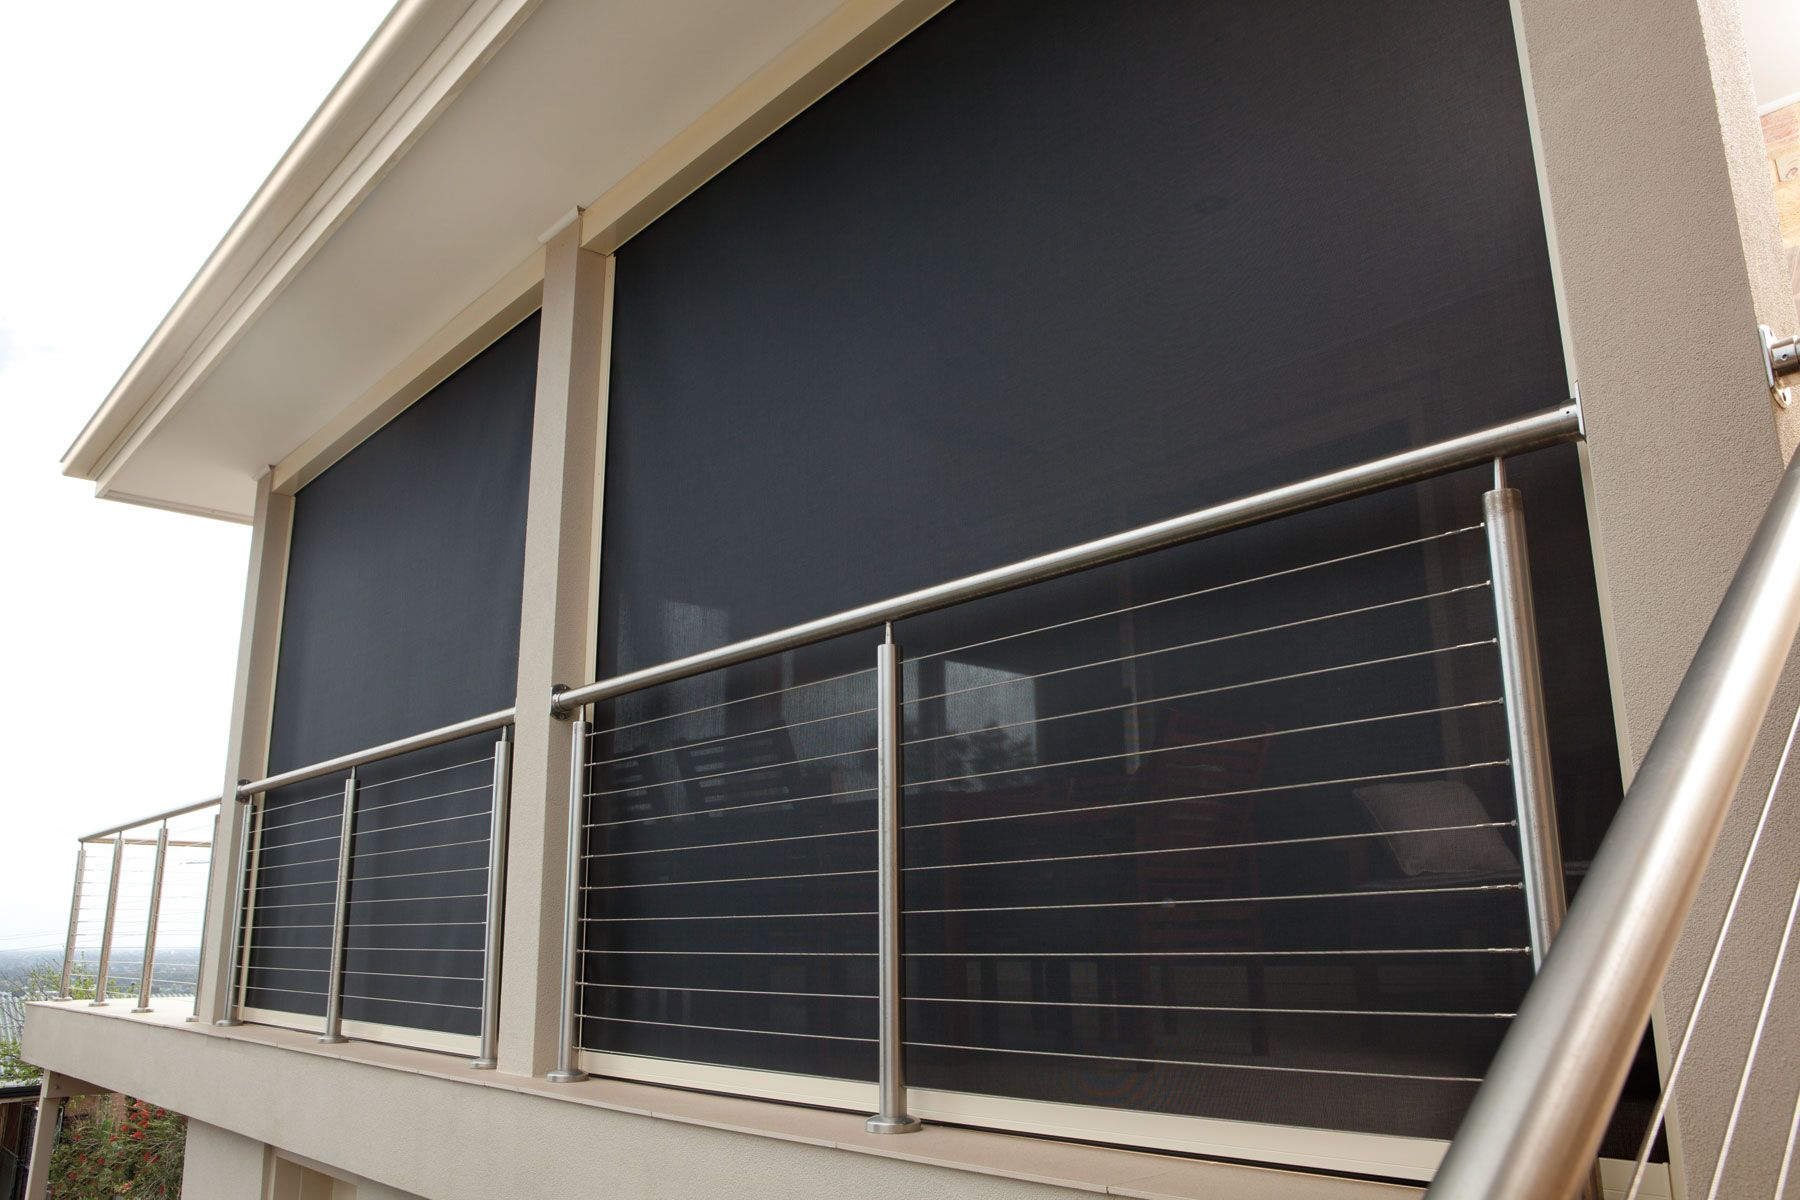 ambient blinds for patios patio blinds patio awnings On outdoor privacy blinds